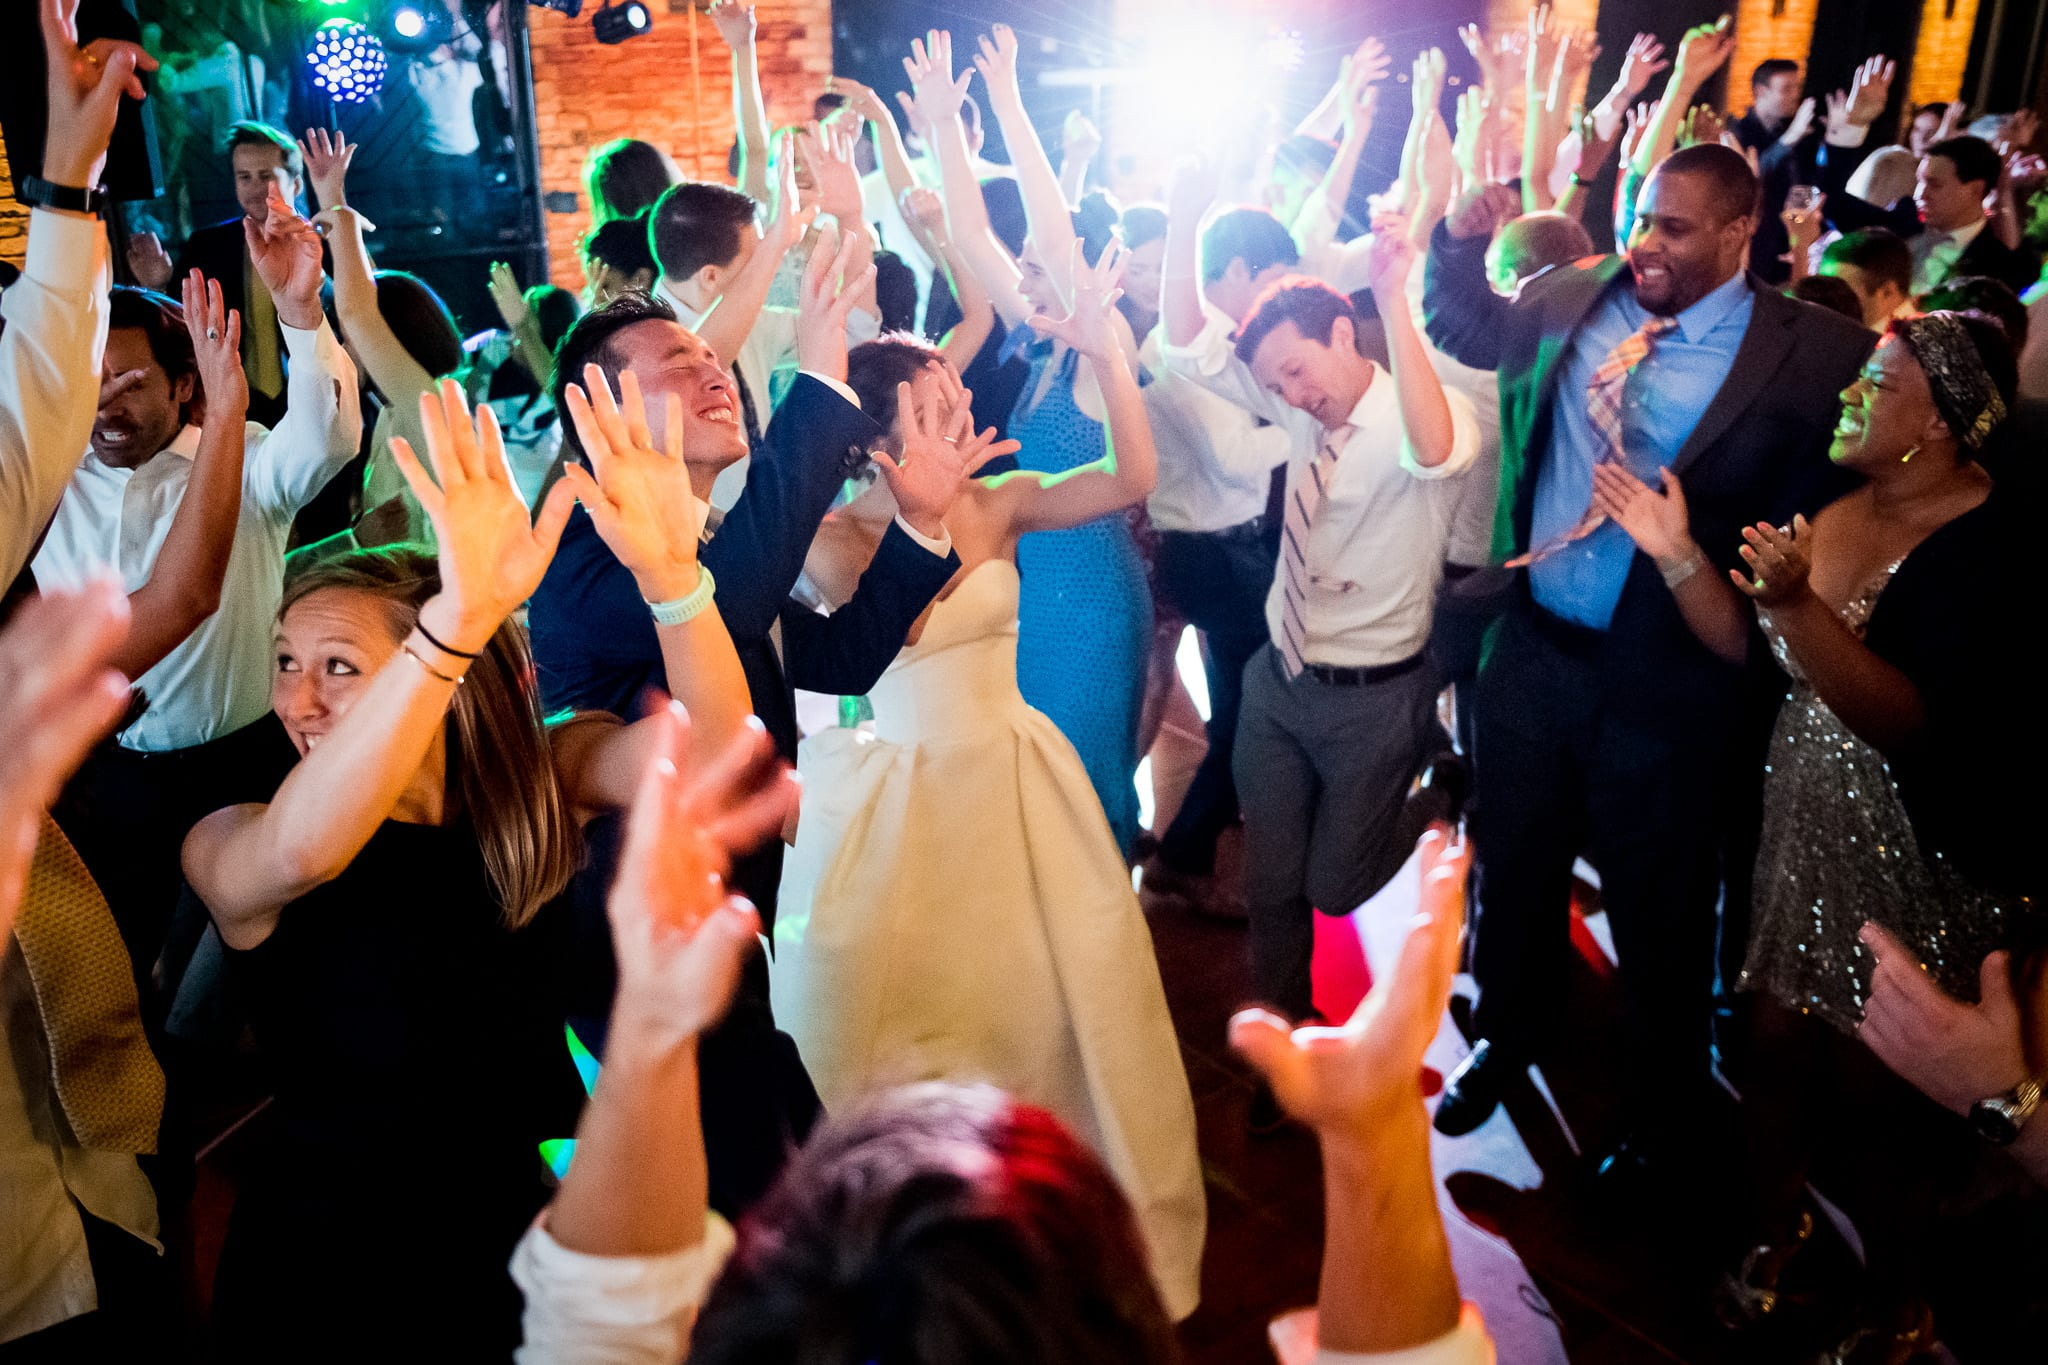 Jam packed dance floor with all of the wedding guests with their hands in the air during a Nicollet Island Pavilion wedding